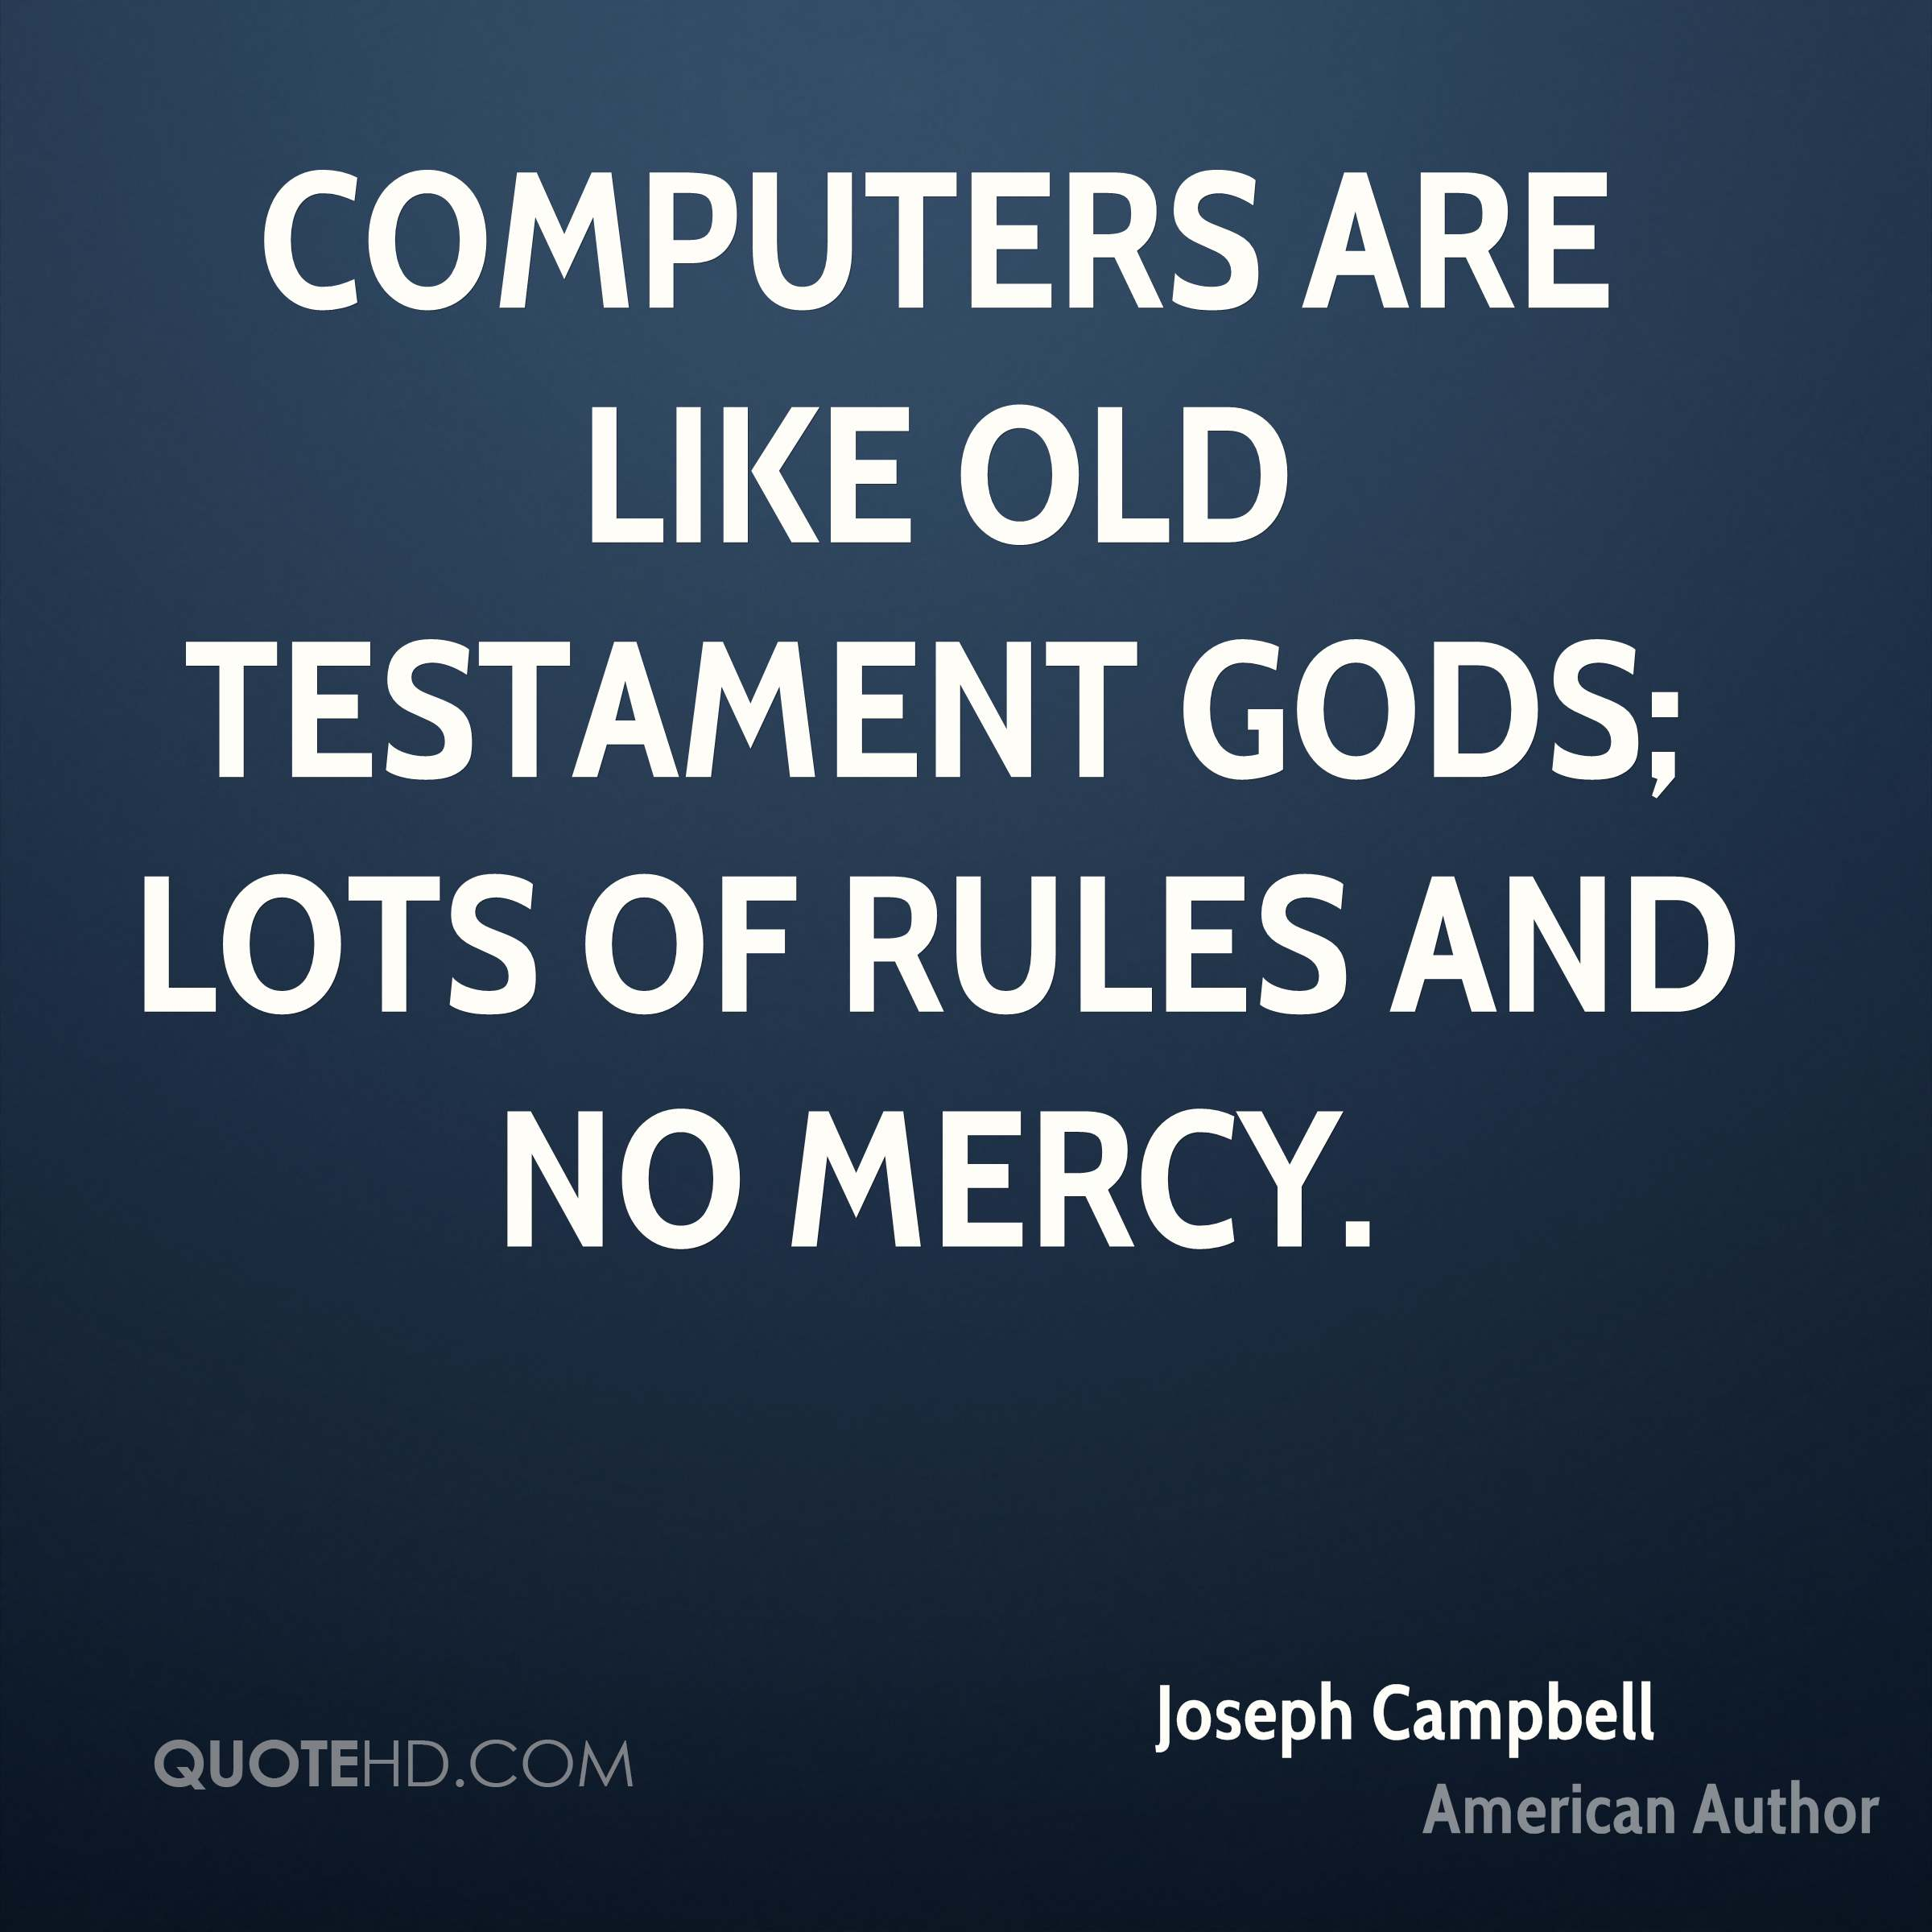 God's Mercy Quotes Joseph Campbell Computers Quotes  Quotehd